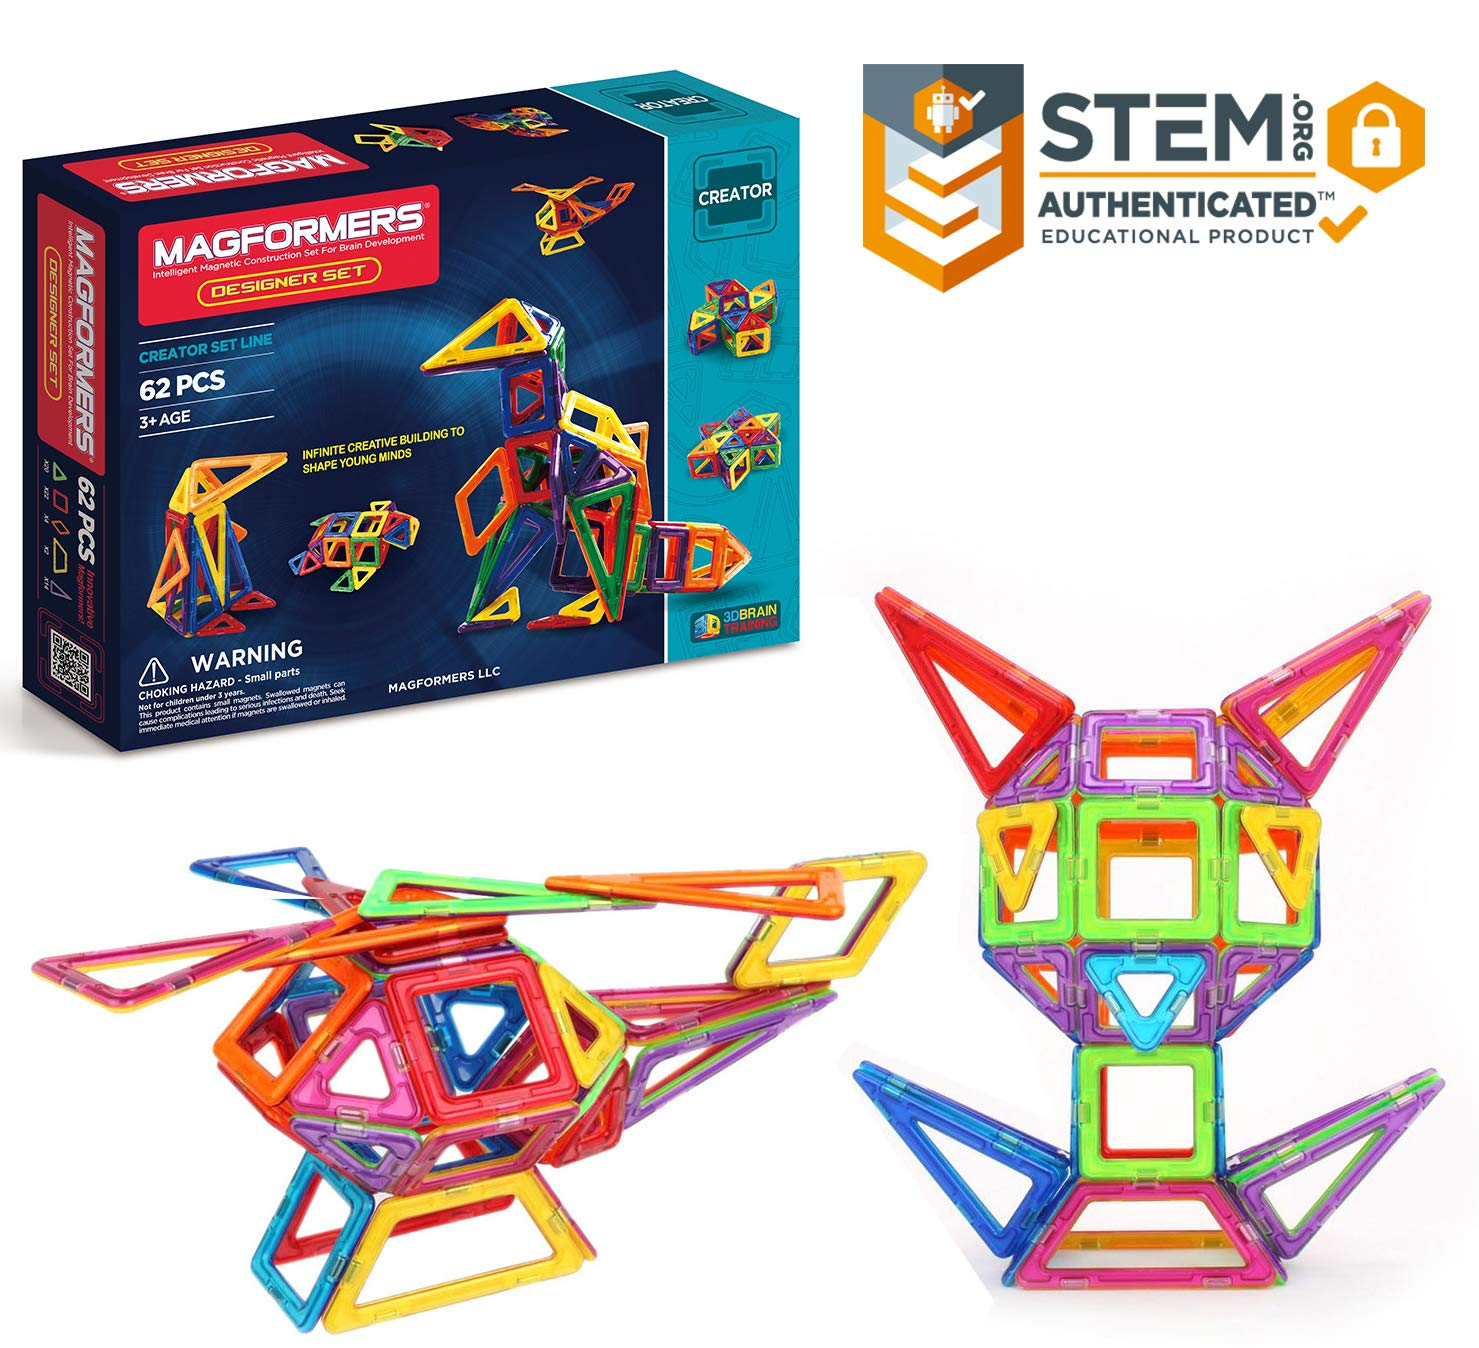 Magformers Designer Set(62-pieces) MagneticBuildingBlocks, Educational MagneticTiles Kit , MagneticConstructionshapes STEM Toy Set